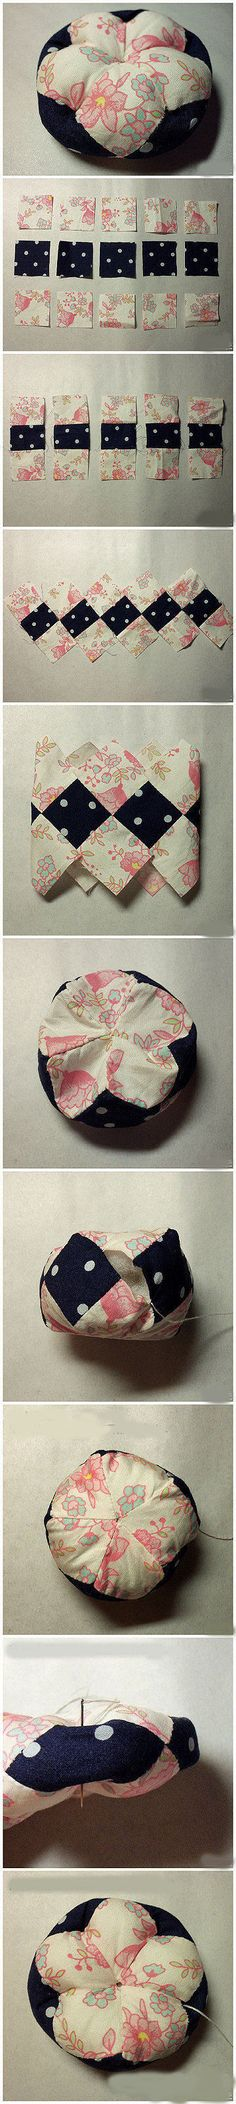 DIY Pillow - I love the idea & the shape but I would supersize it for a floor cushion